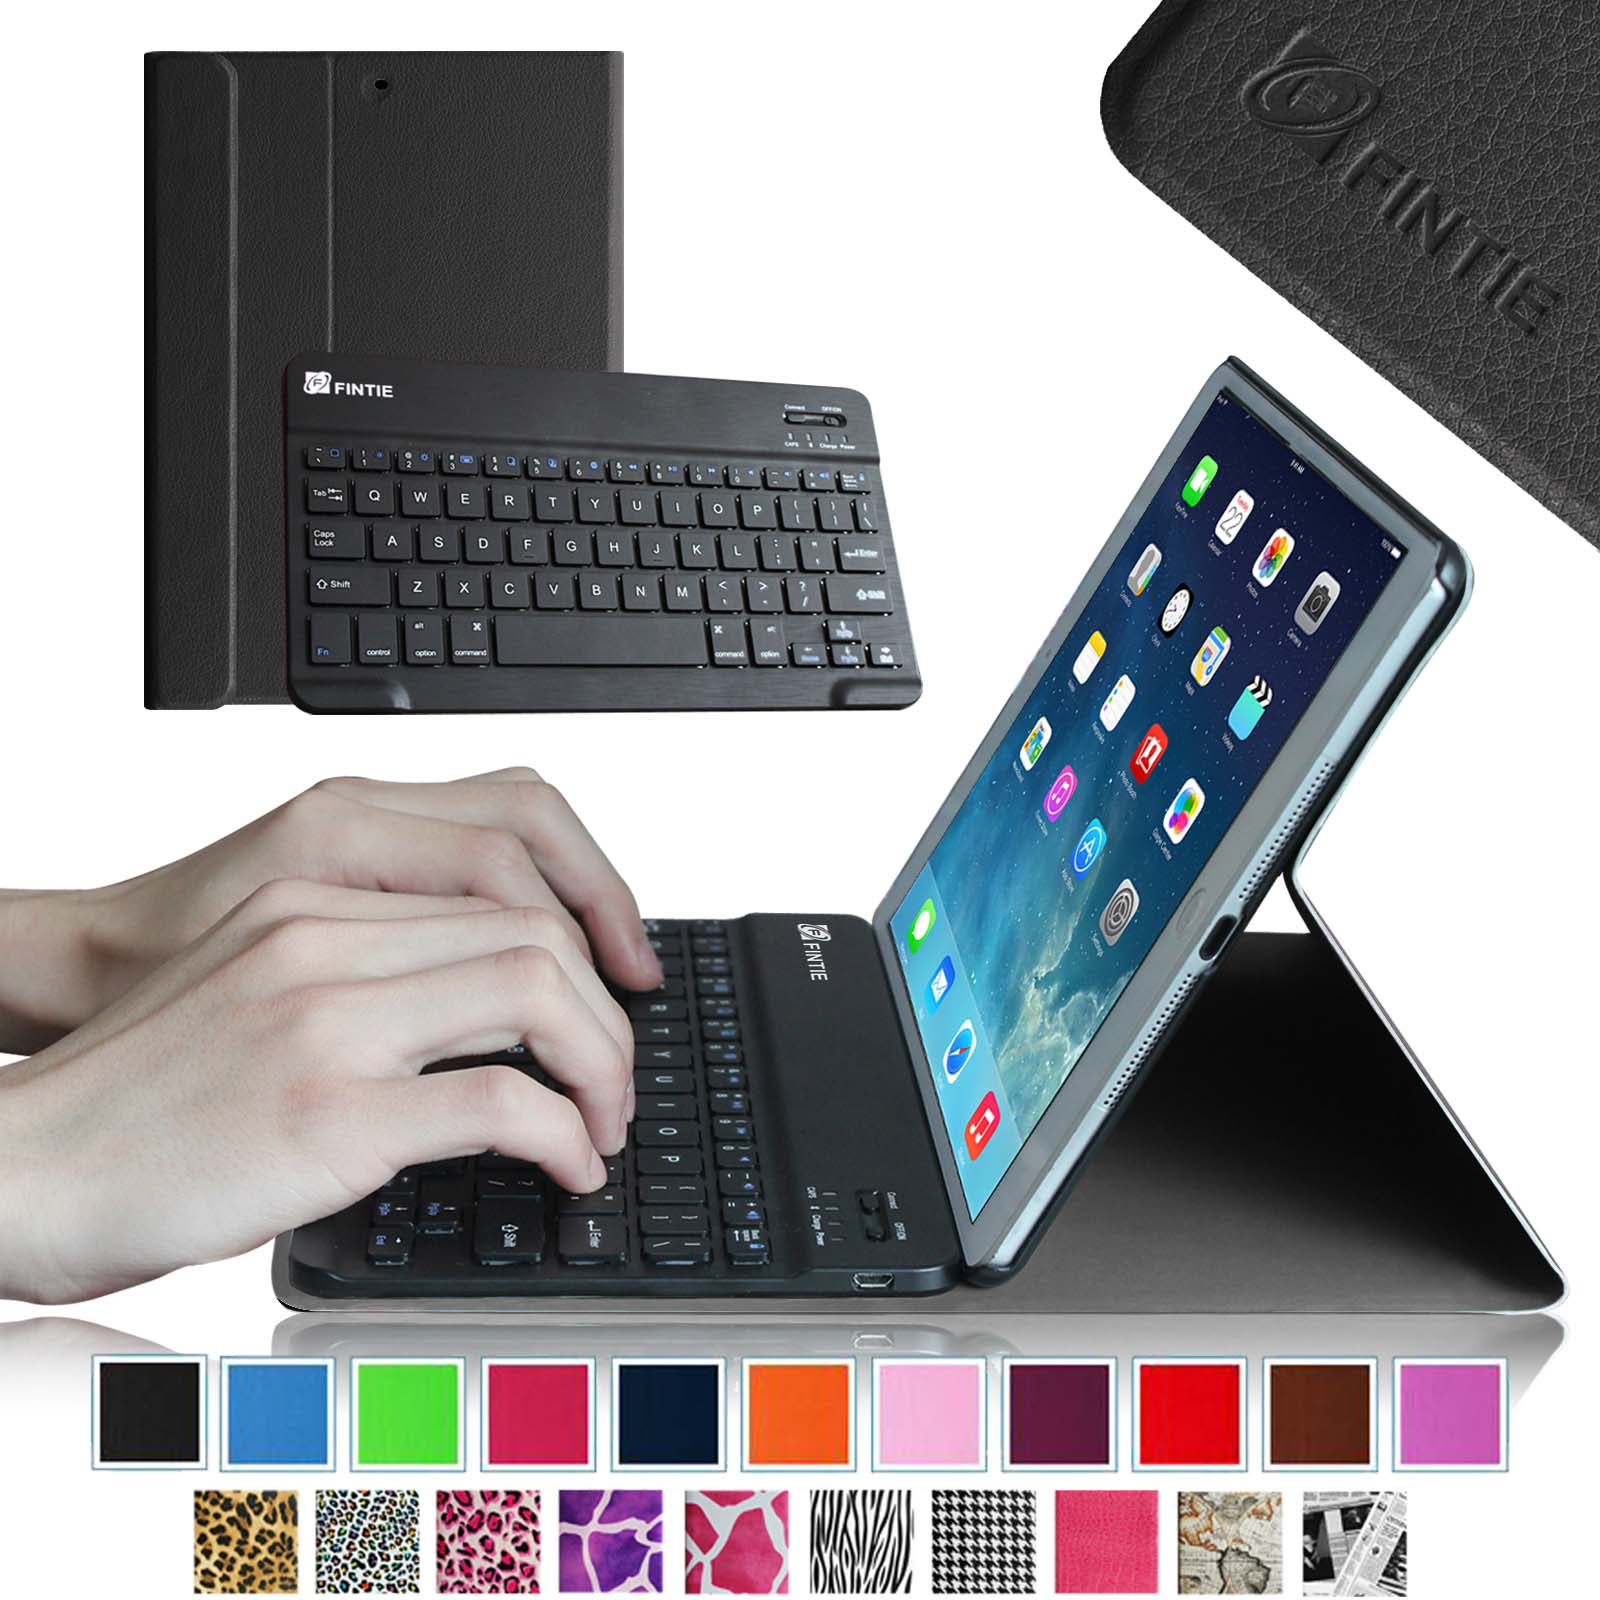 Fintie SmartShell Cover with Wireless Bluetooth Keyboard Case for Apple iPad Air / iPad 5 (5th Generation), Black